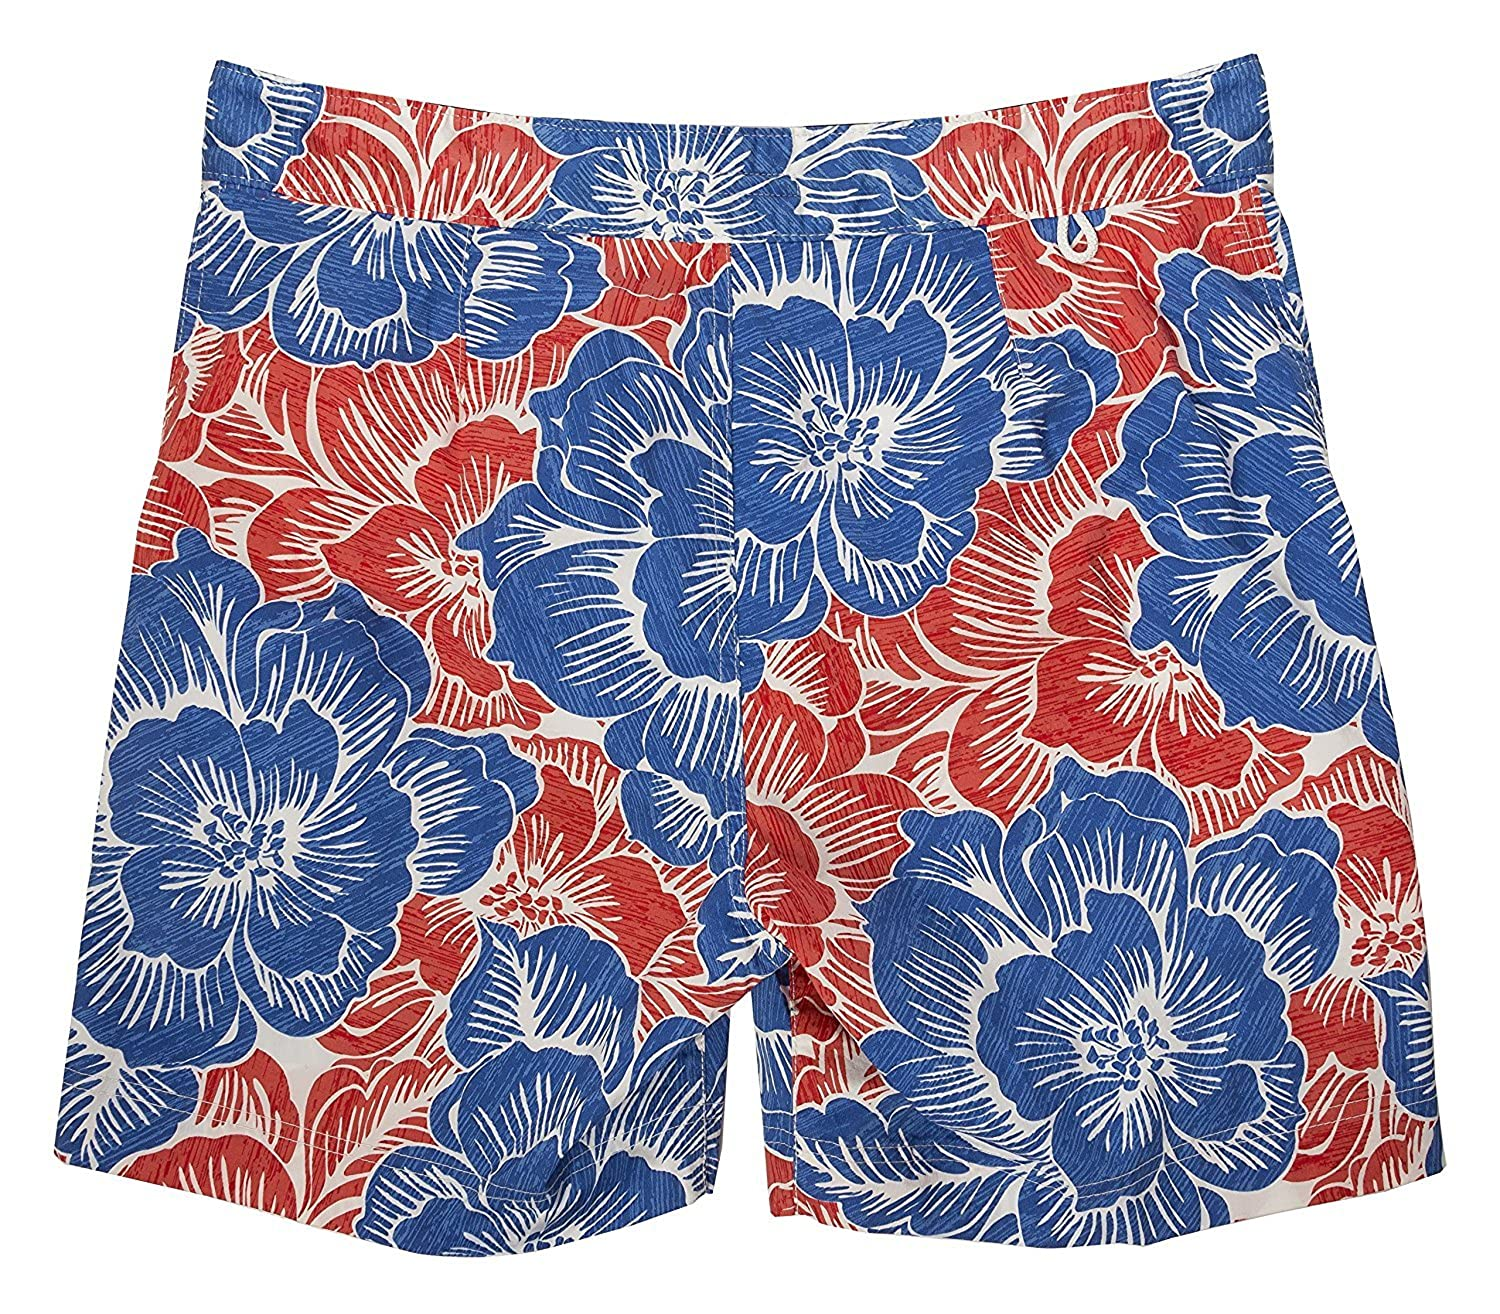 2079c9fae1 Tommy Hilfiger Men's Surfside Floral Print Swim Trunks (XX-Large) |  Amazon.com